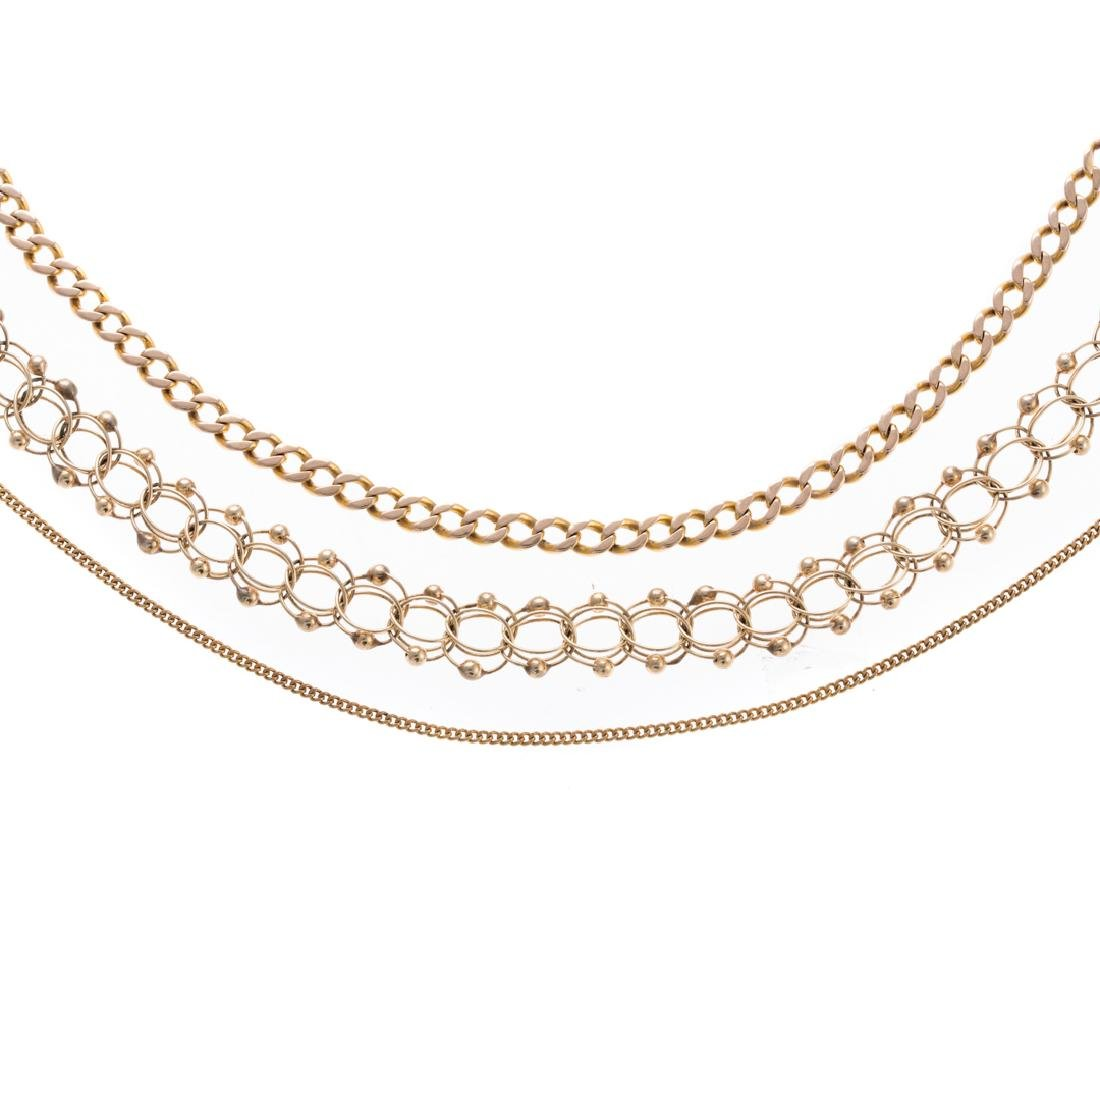 A Collection of Gold Chain Necklaces & Bracelets